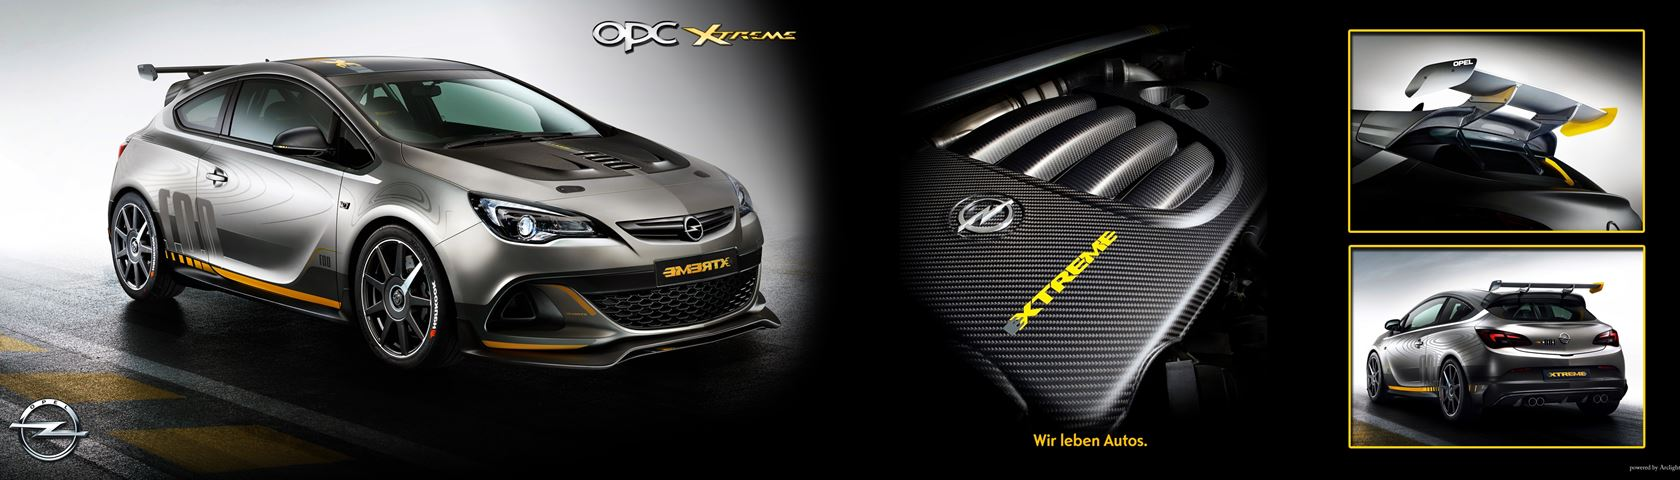 Opel Astra J OPC Xtreme